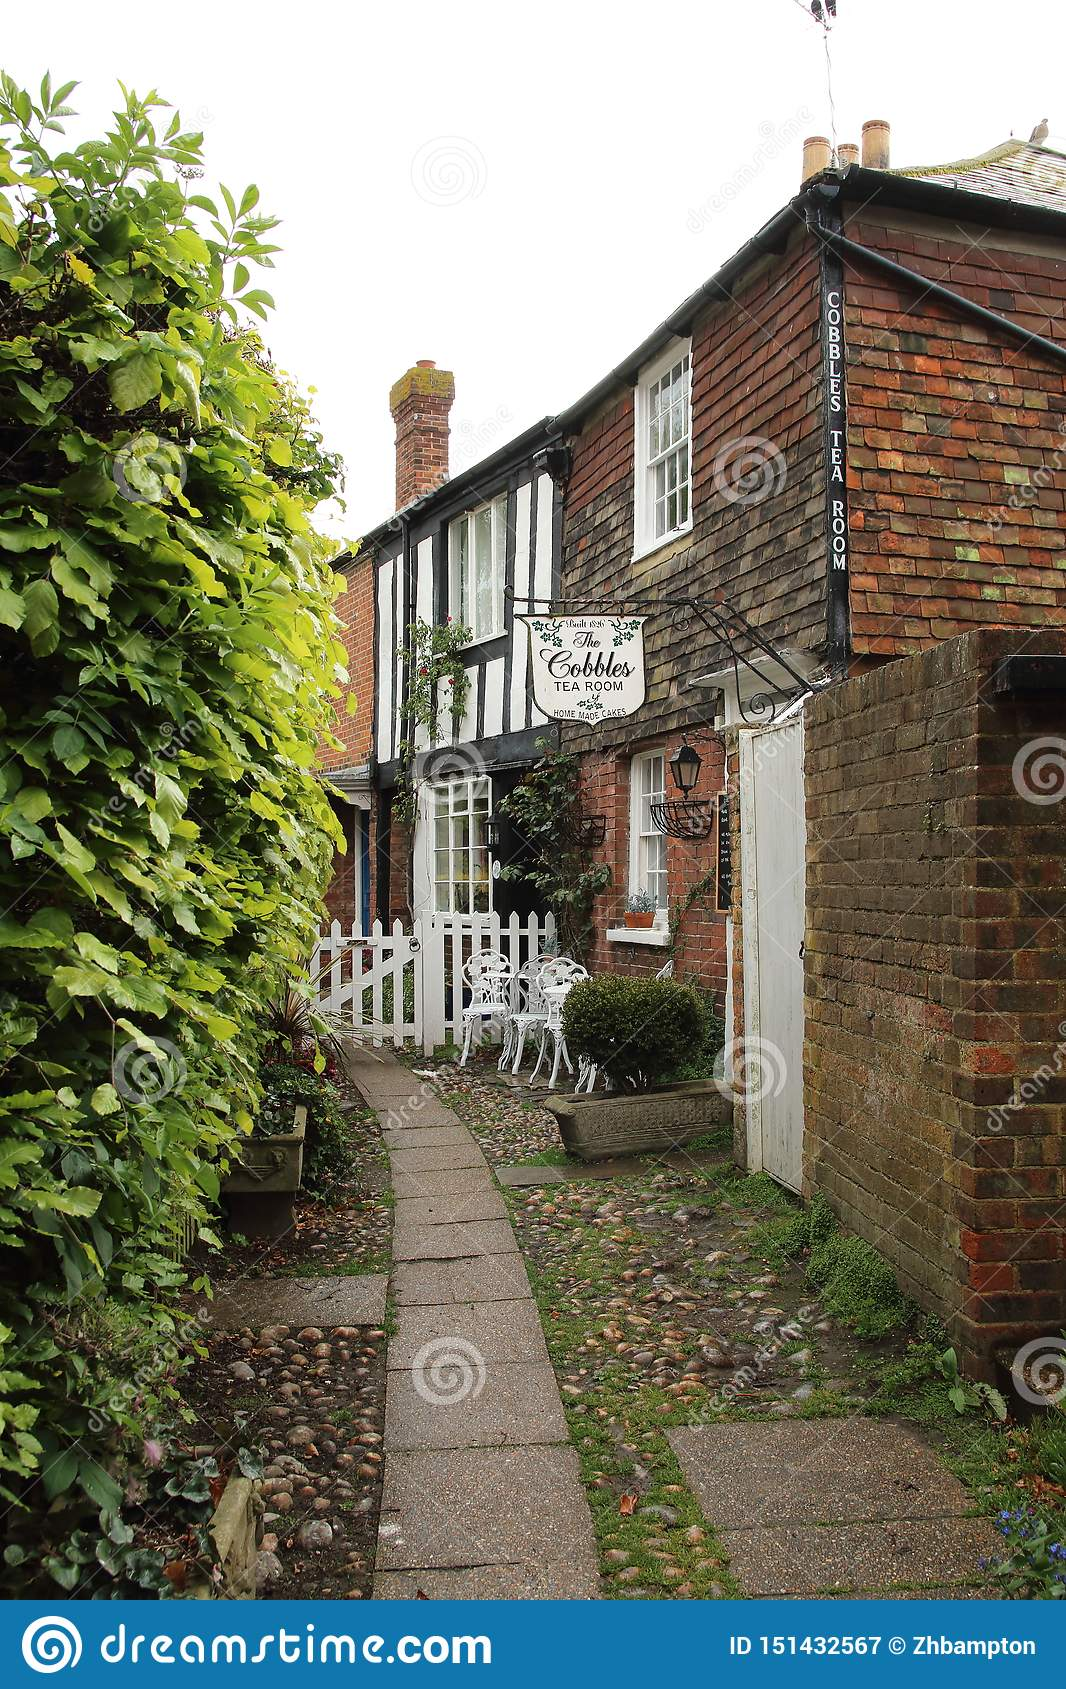 The Cobbles Tea room in Rye East Sussex, England